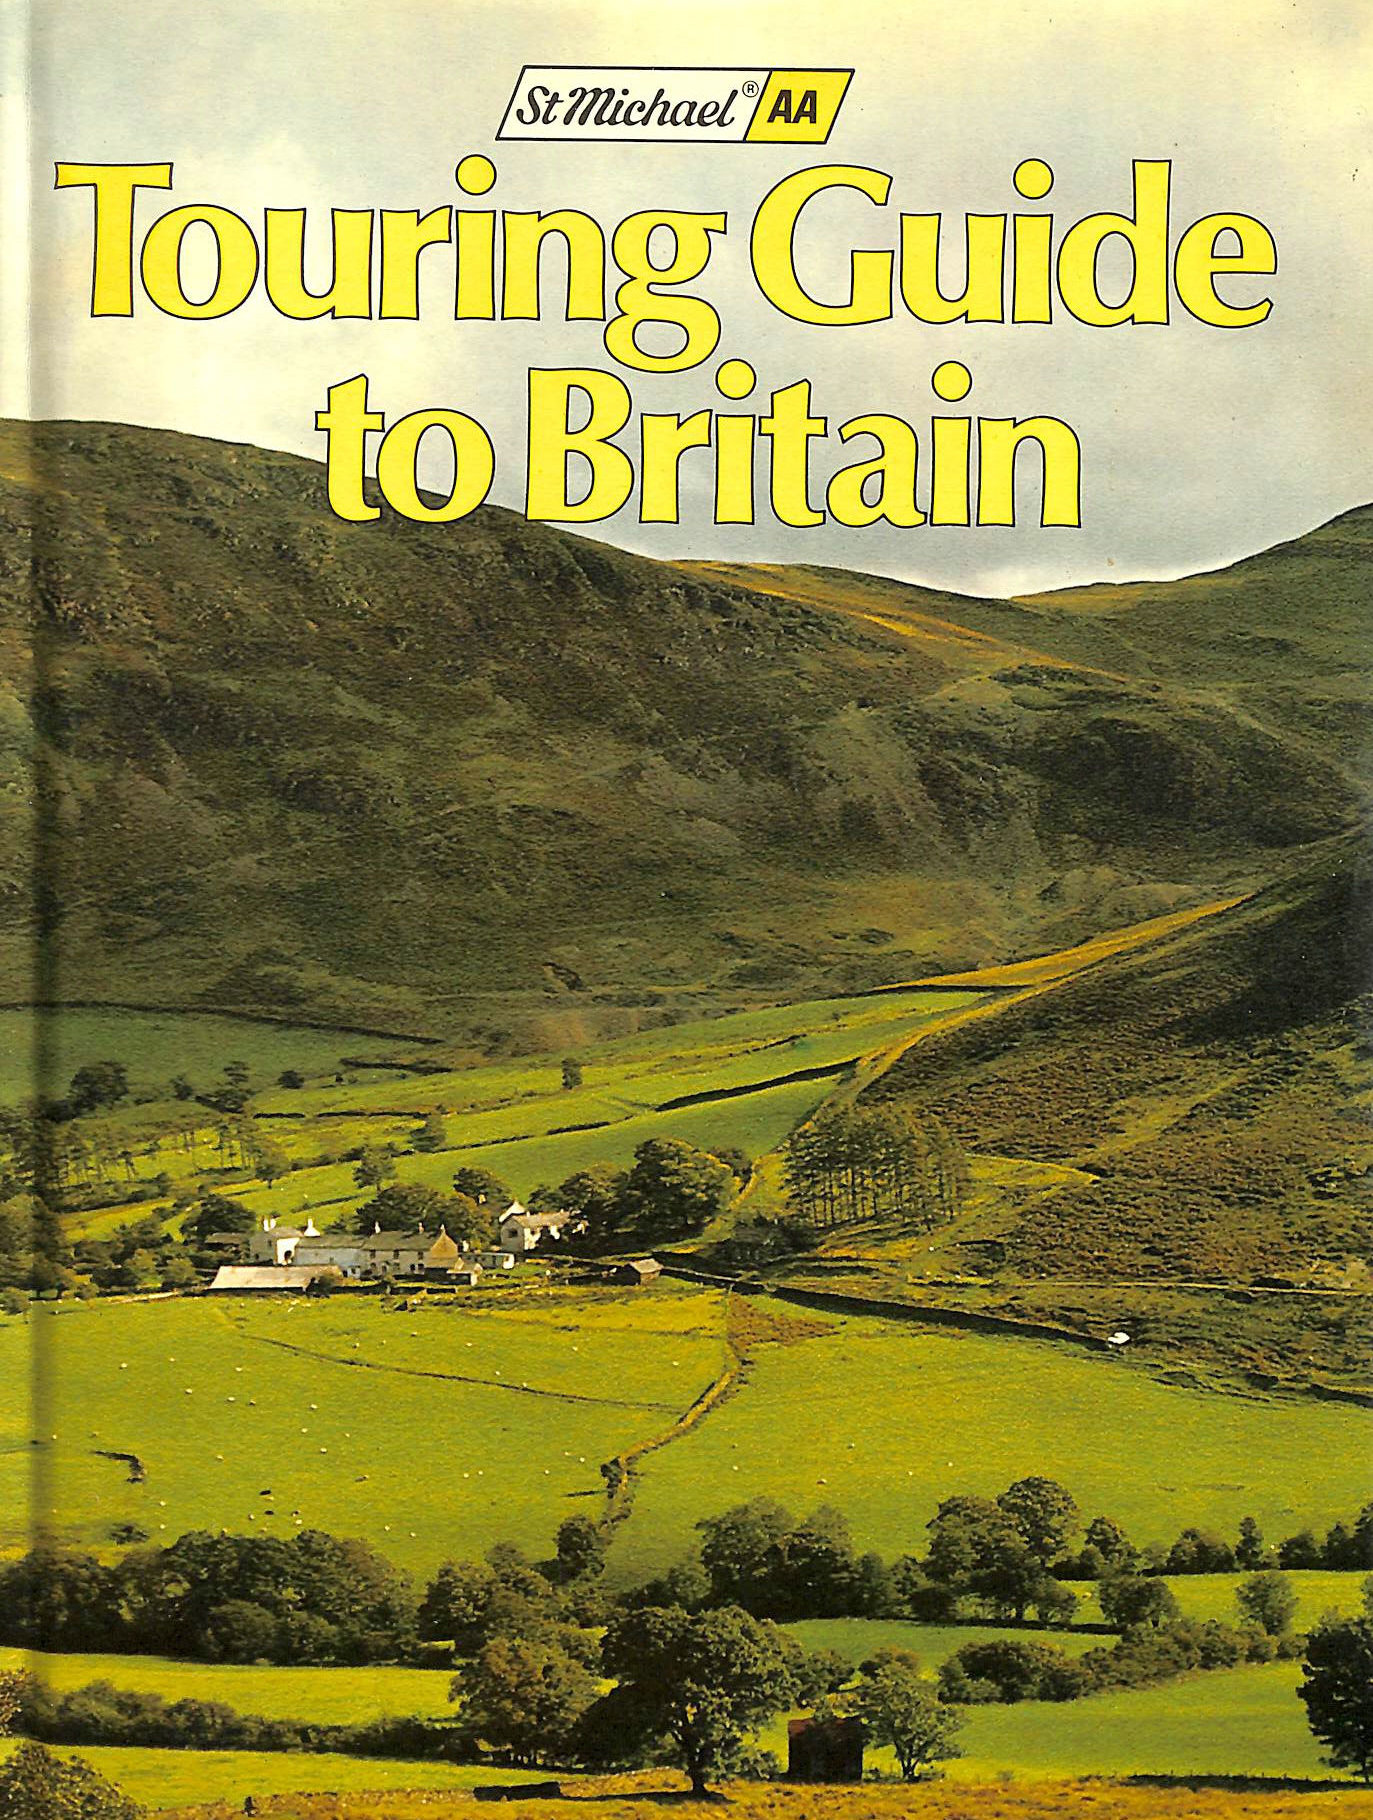 Image for Touring Guide to Britain (AA / St Michael)